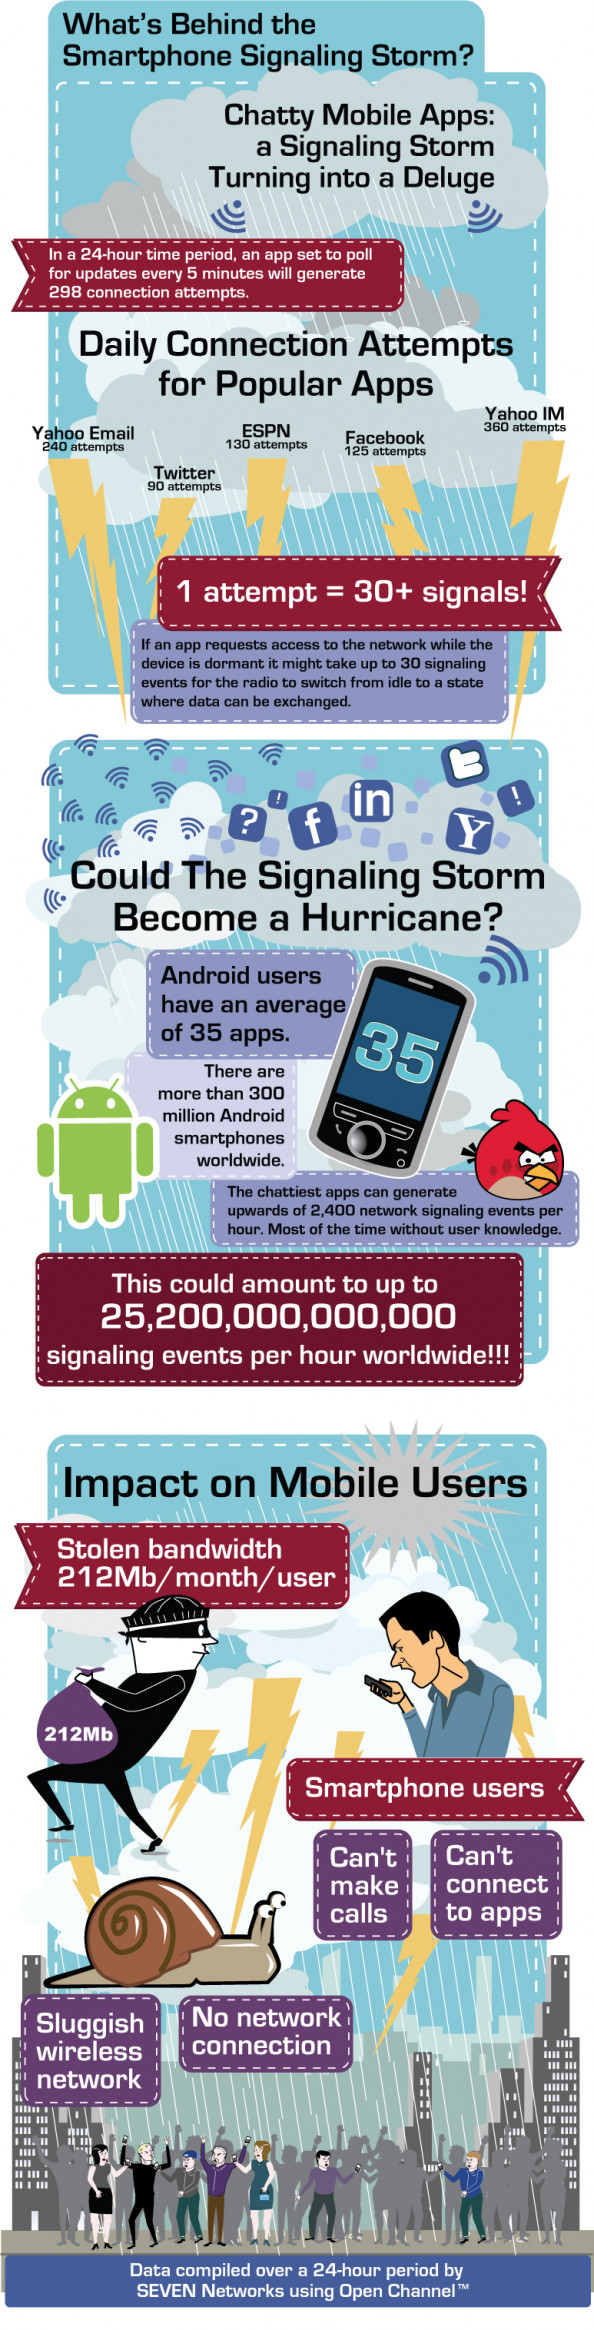 Smart Phone Signaling Storm Infographic